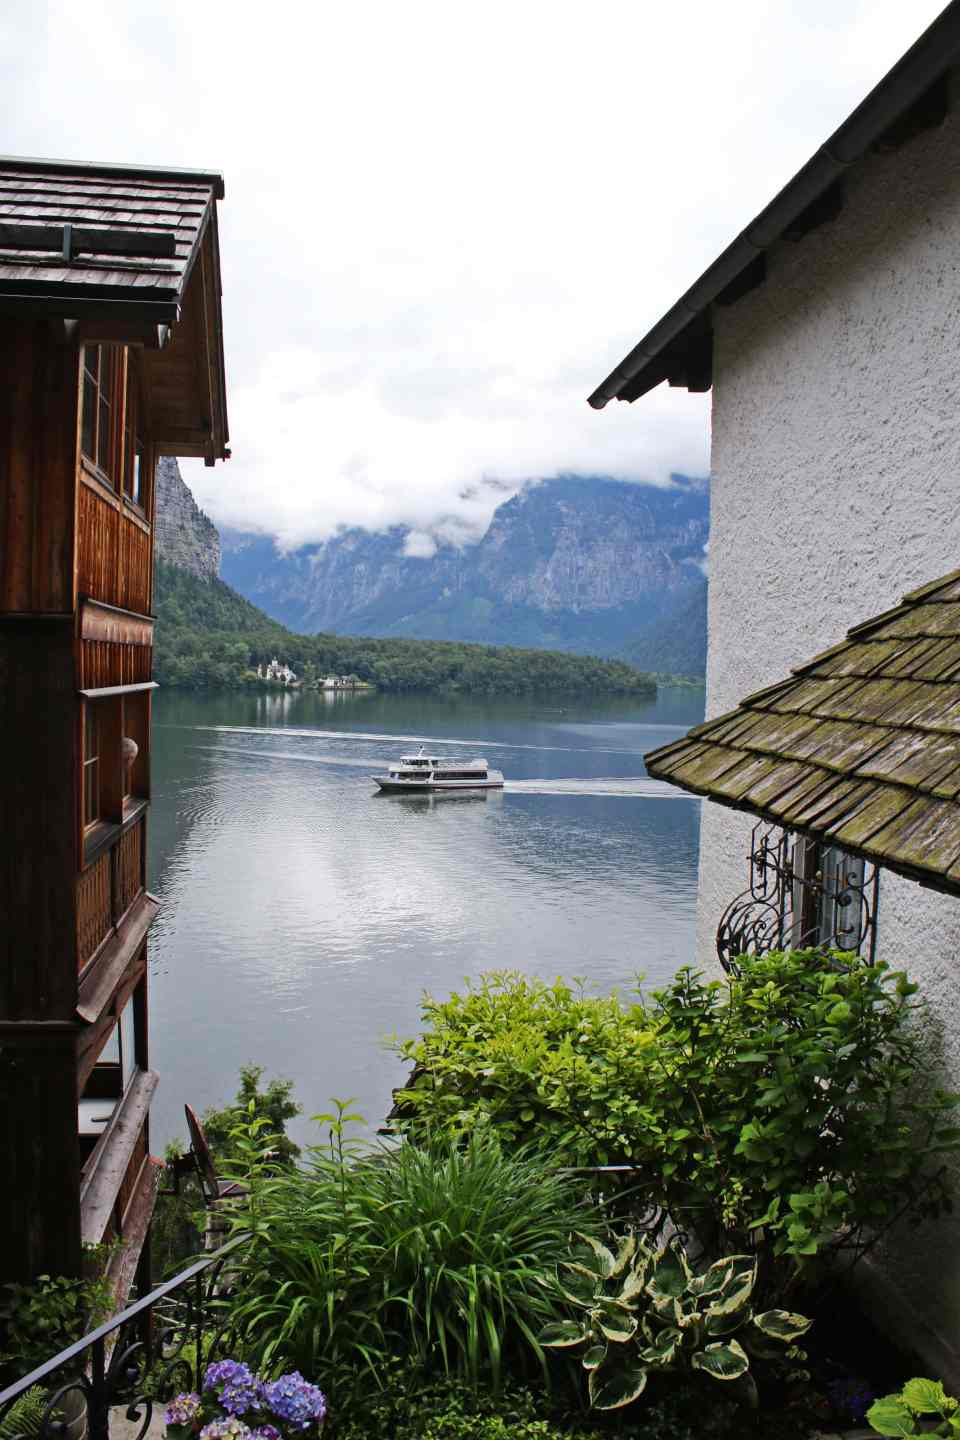 A view of the ferry boats on Lake Hallstatt